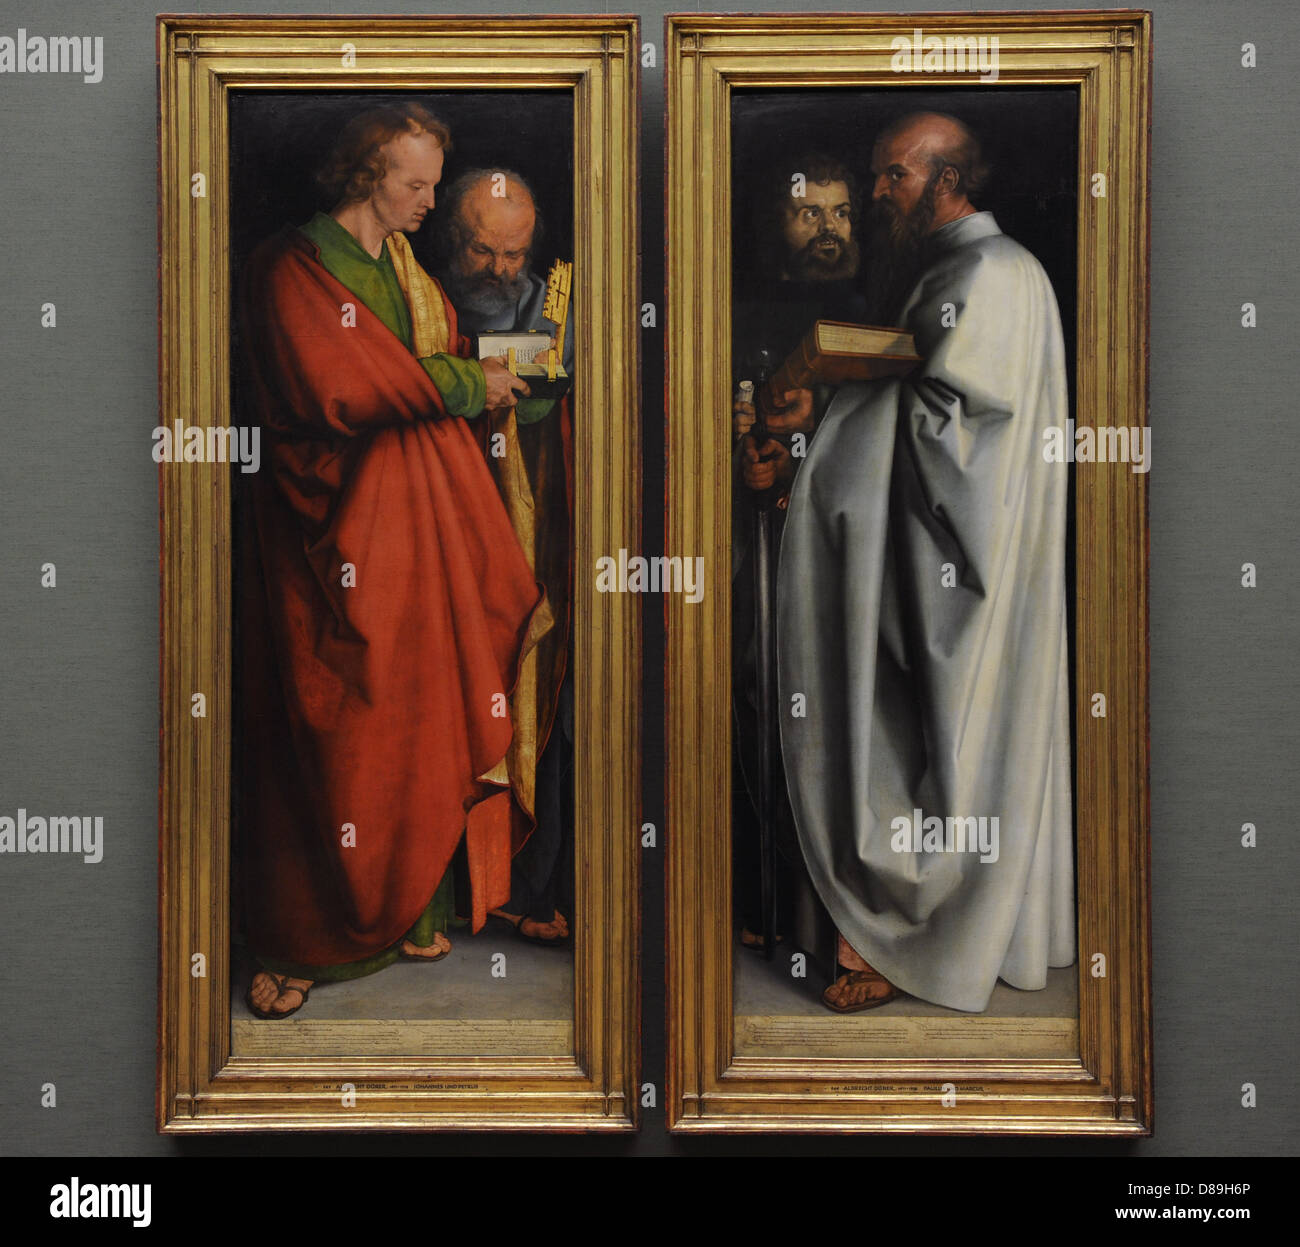 Albrecht Durer ((1471-1528). German painter. Northern Renaissance. The Four Apostles.  It was finished in 1526. - Stock Image